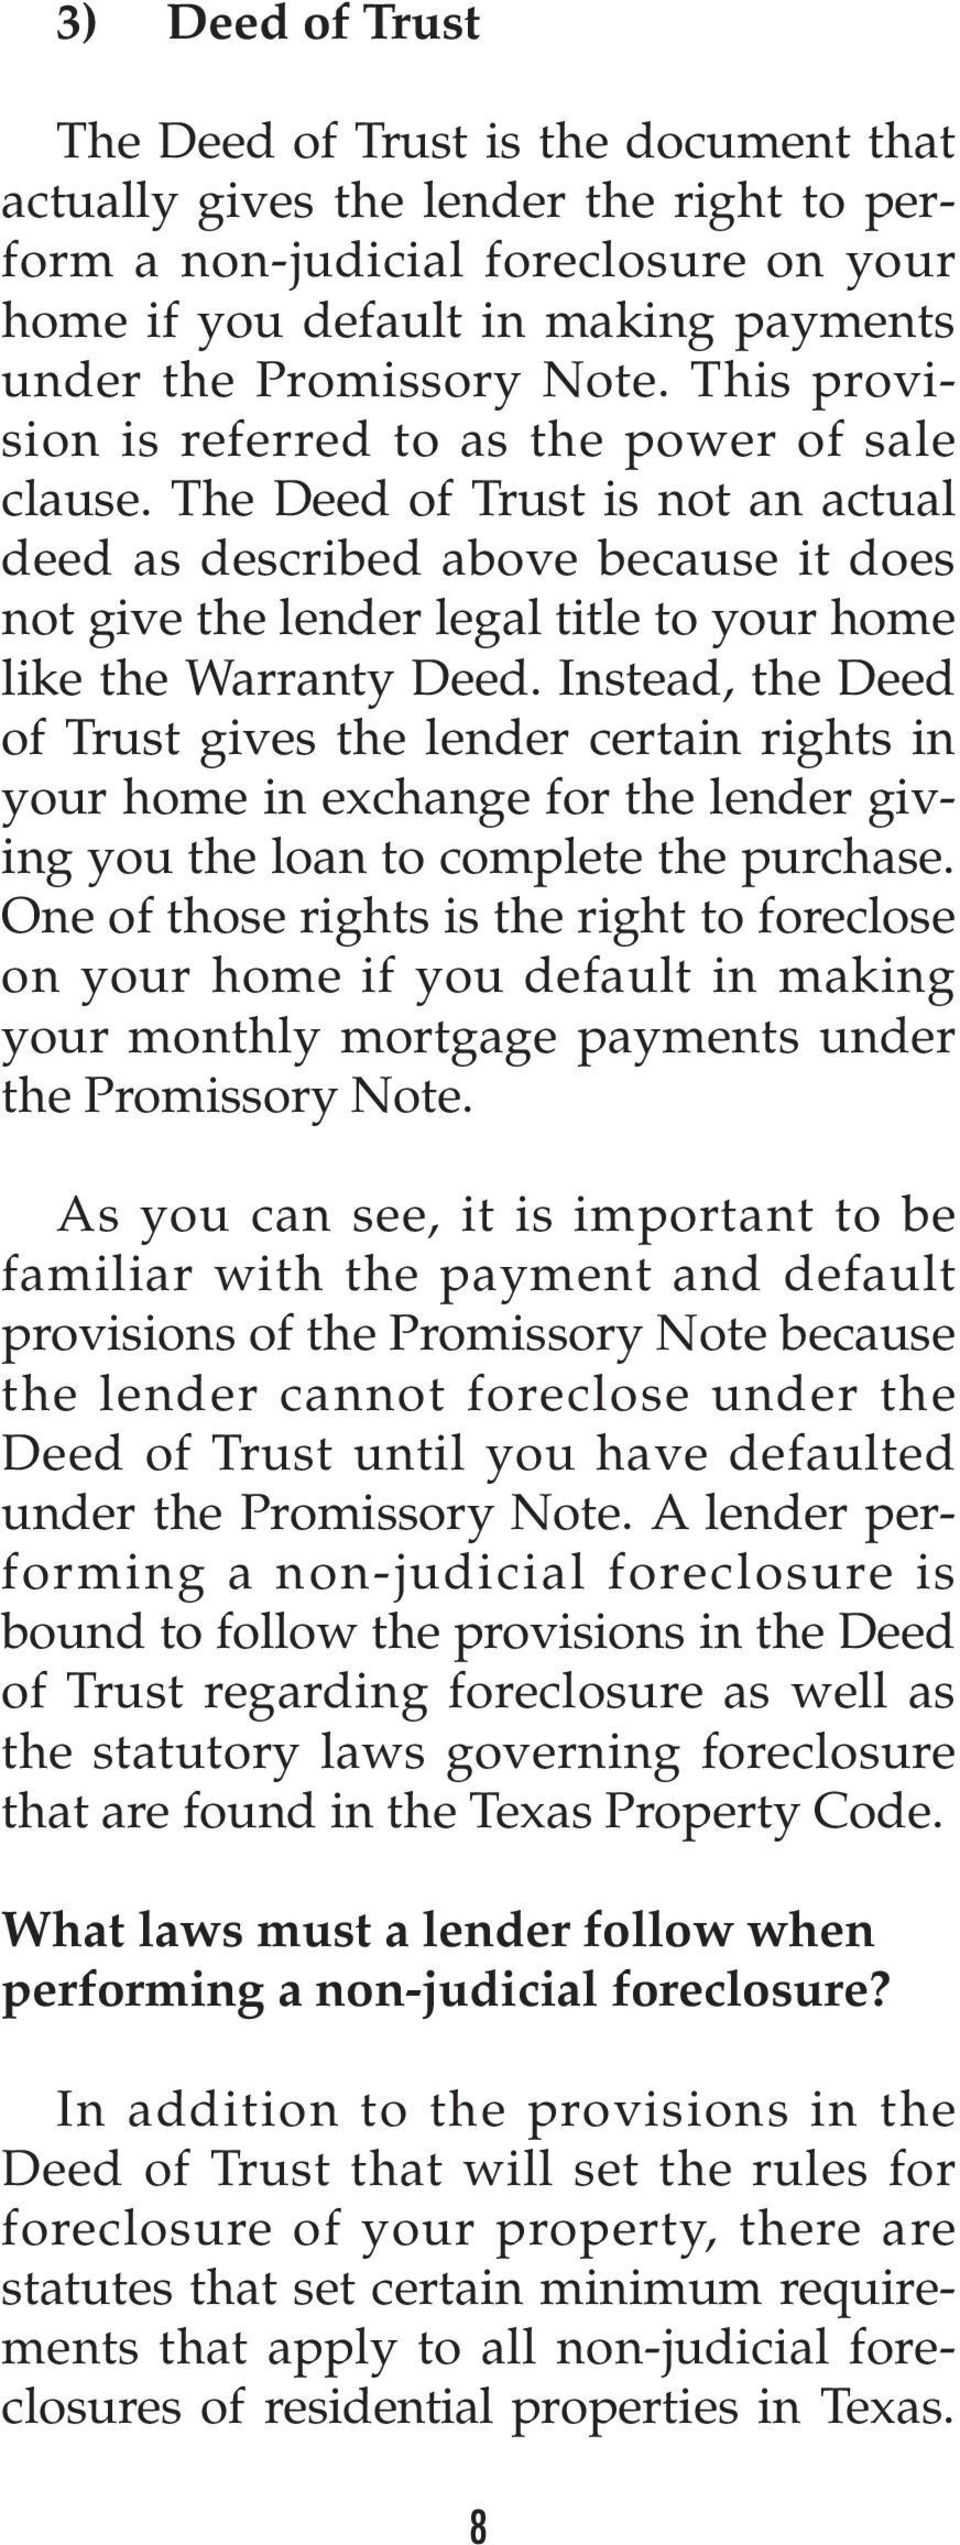 The Deed of Trust is not an actual deed as described above because it does not give the lender legal title to your home like the Warranty Deed.